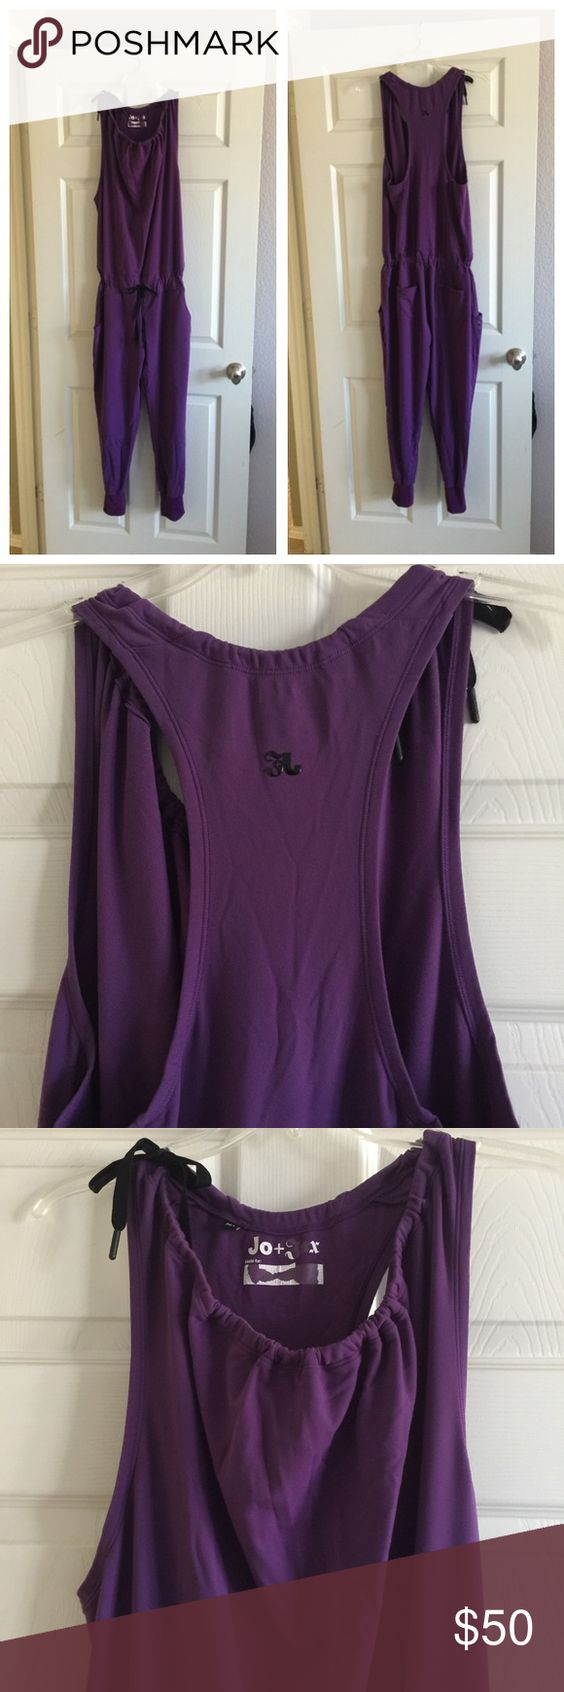 JO+JAX ROMPER EUC. Size: Medium. Jo+Jack Romper. Color: Purple. Drawstring at neckline. Drawstring waist. Front and Back Pockets. The only flaw is the vinyl lettering that is coming off the inside tag of the neckline. Jo+Jax Pants Jumpsuits & Rompers